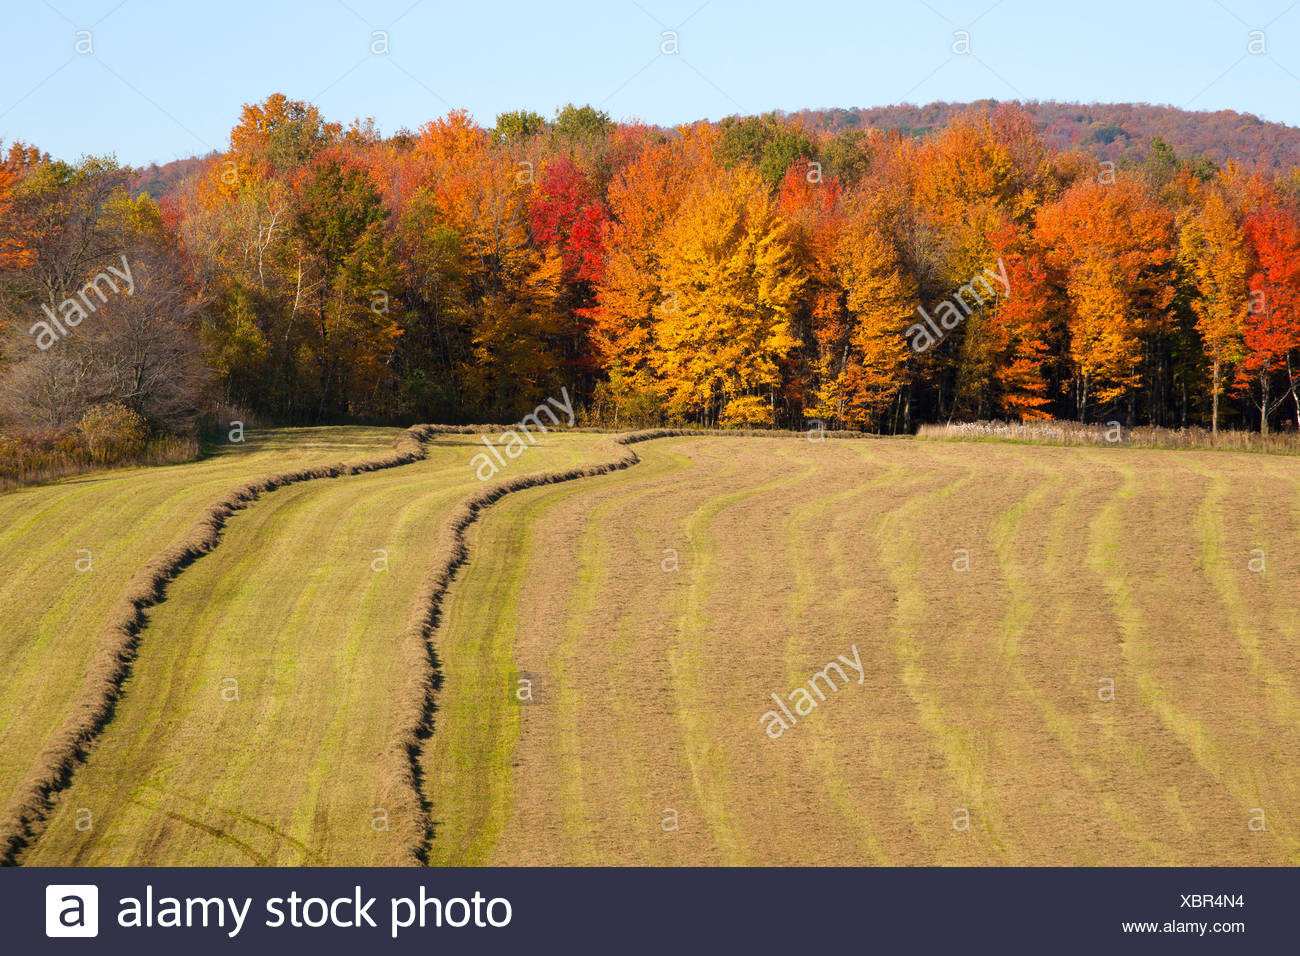 Hayfield being harvested in autumn, Abercorn, Quebec, Canada - Stock Image